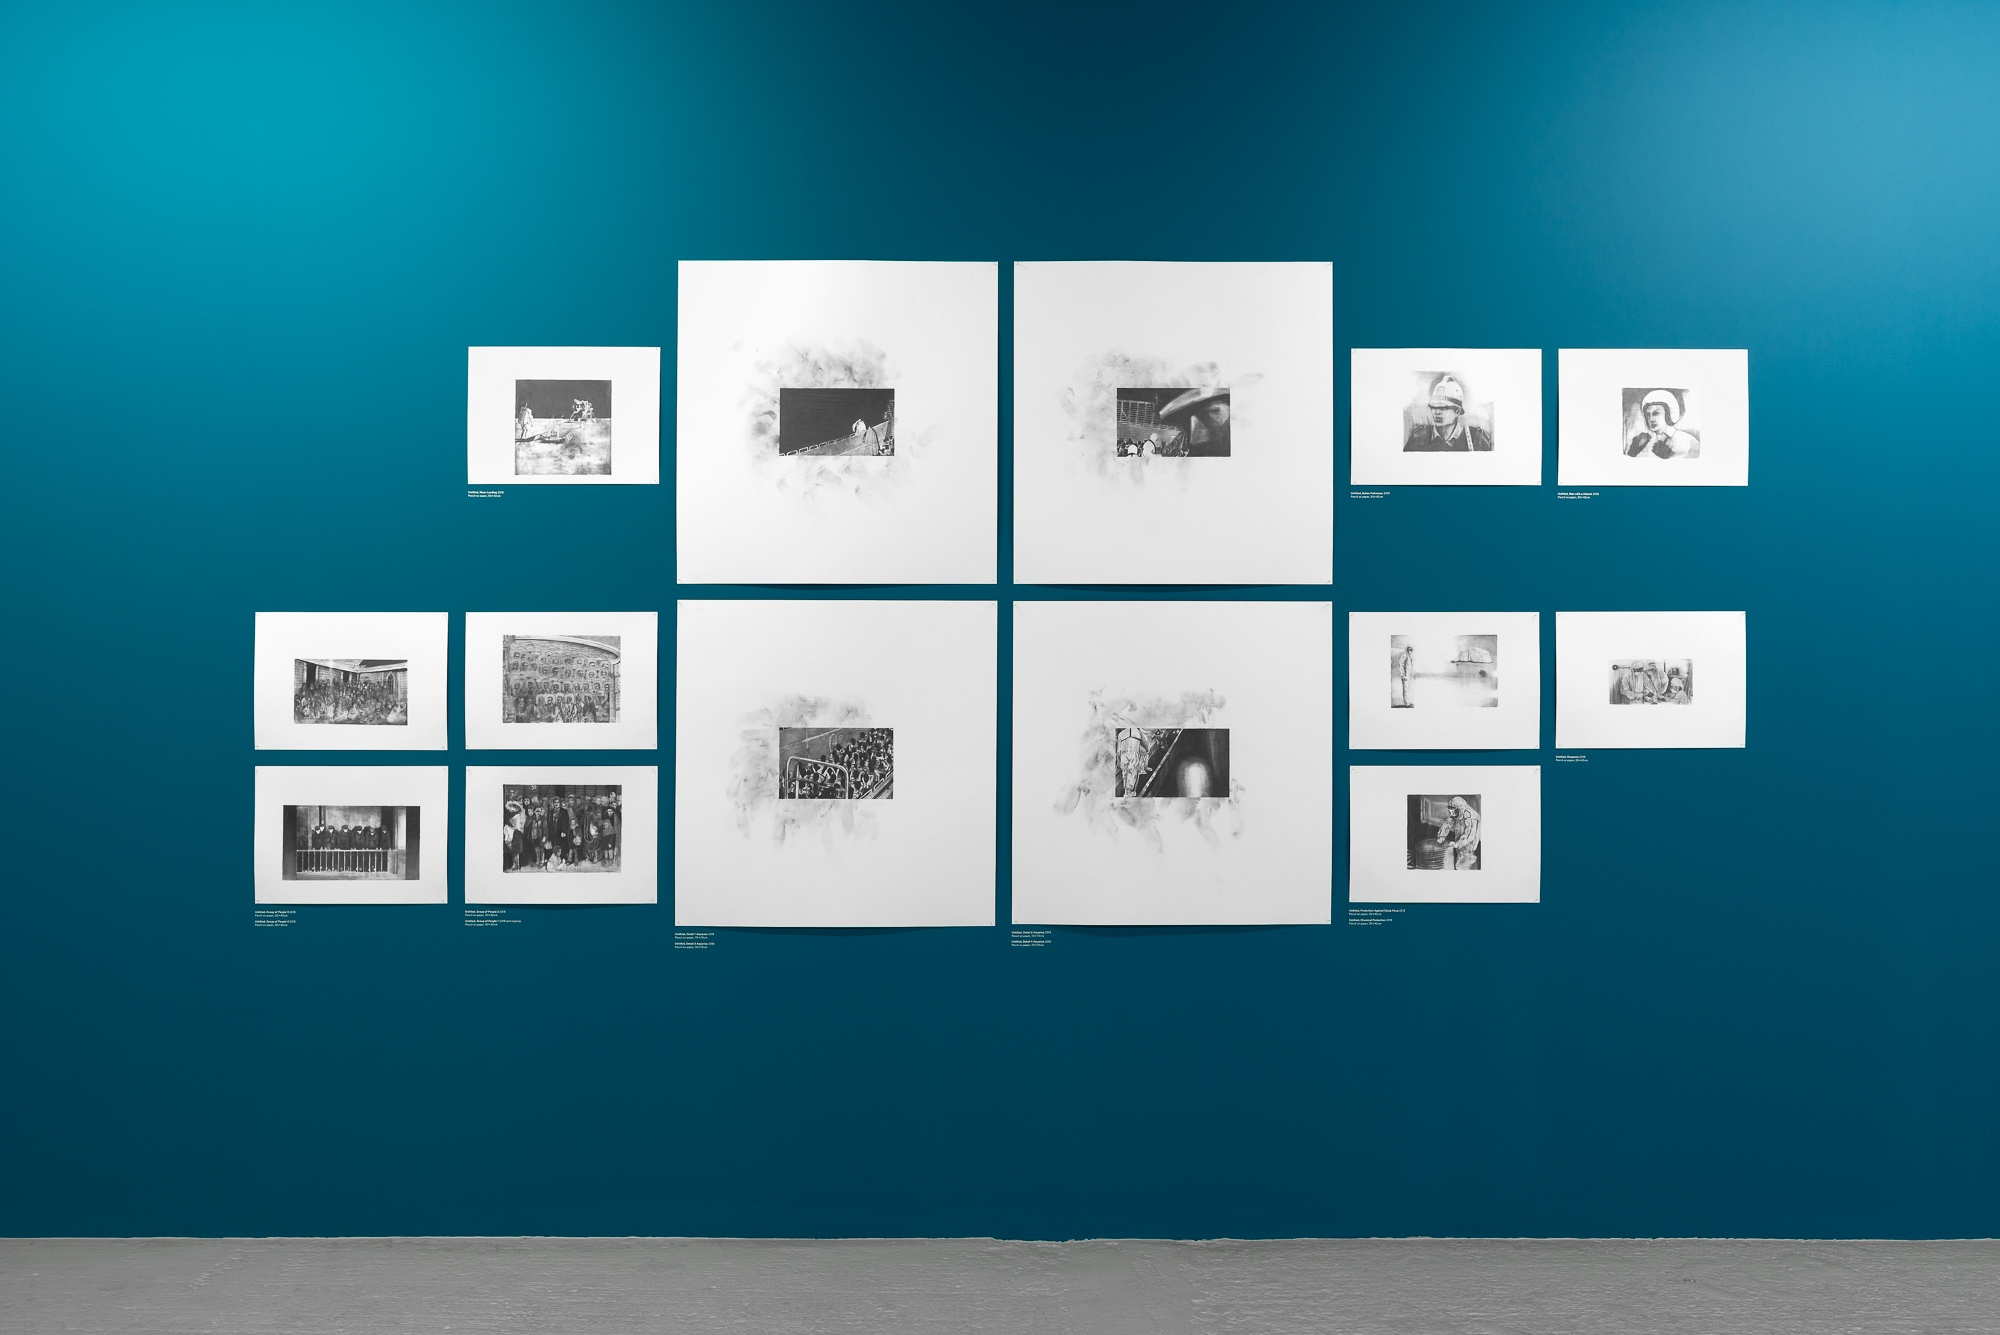 Installation view of Marc Bauer, Mal Ȇtre / Performance. Image: Eva Herzog. Courtesy the artist and Drawing Room, London